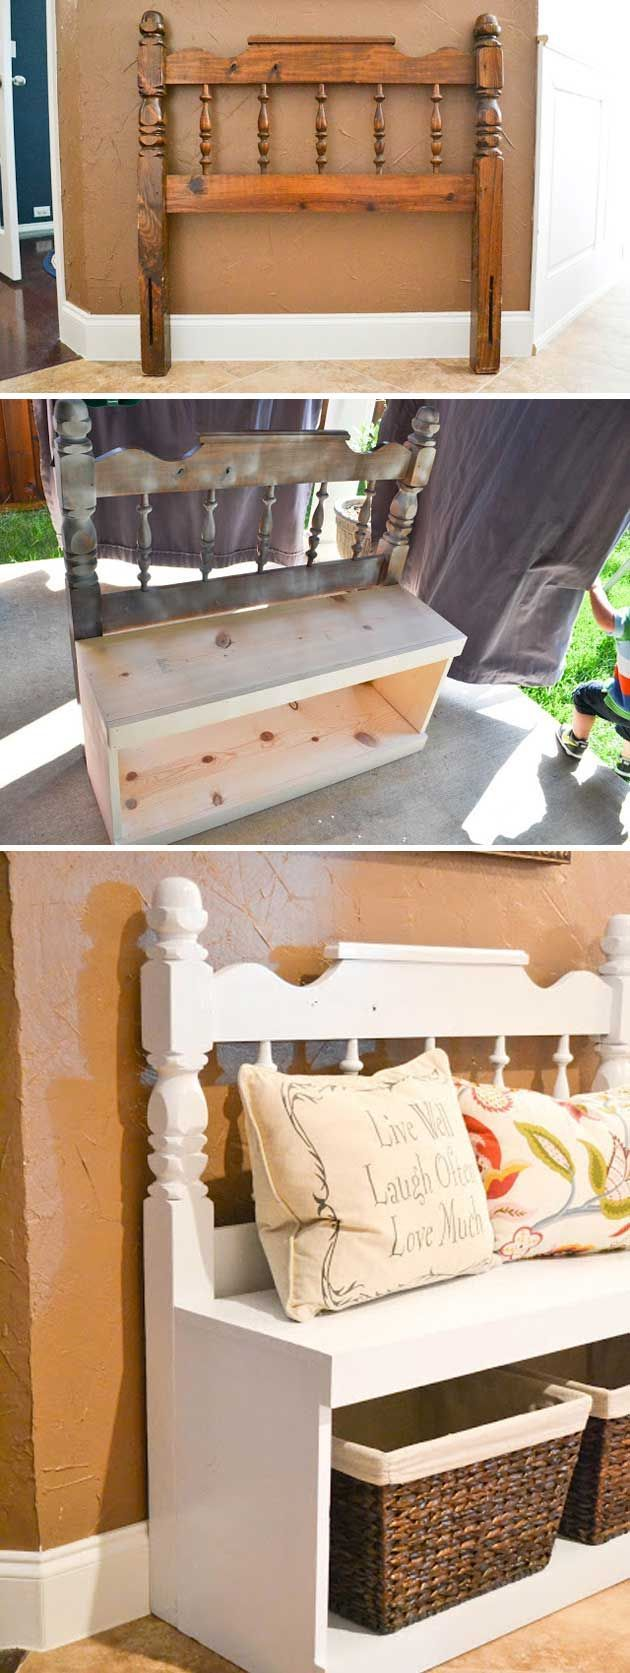 Entryway Bench Produced From An Outdated Headboard And A Few Boards….